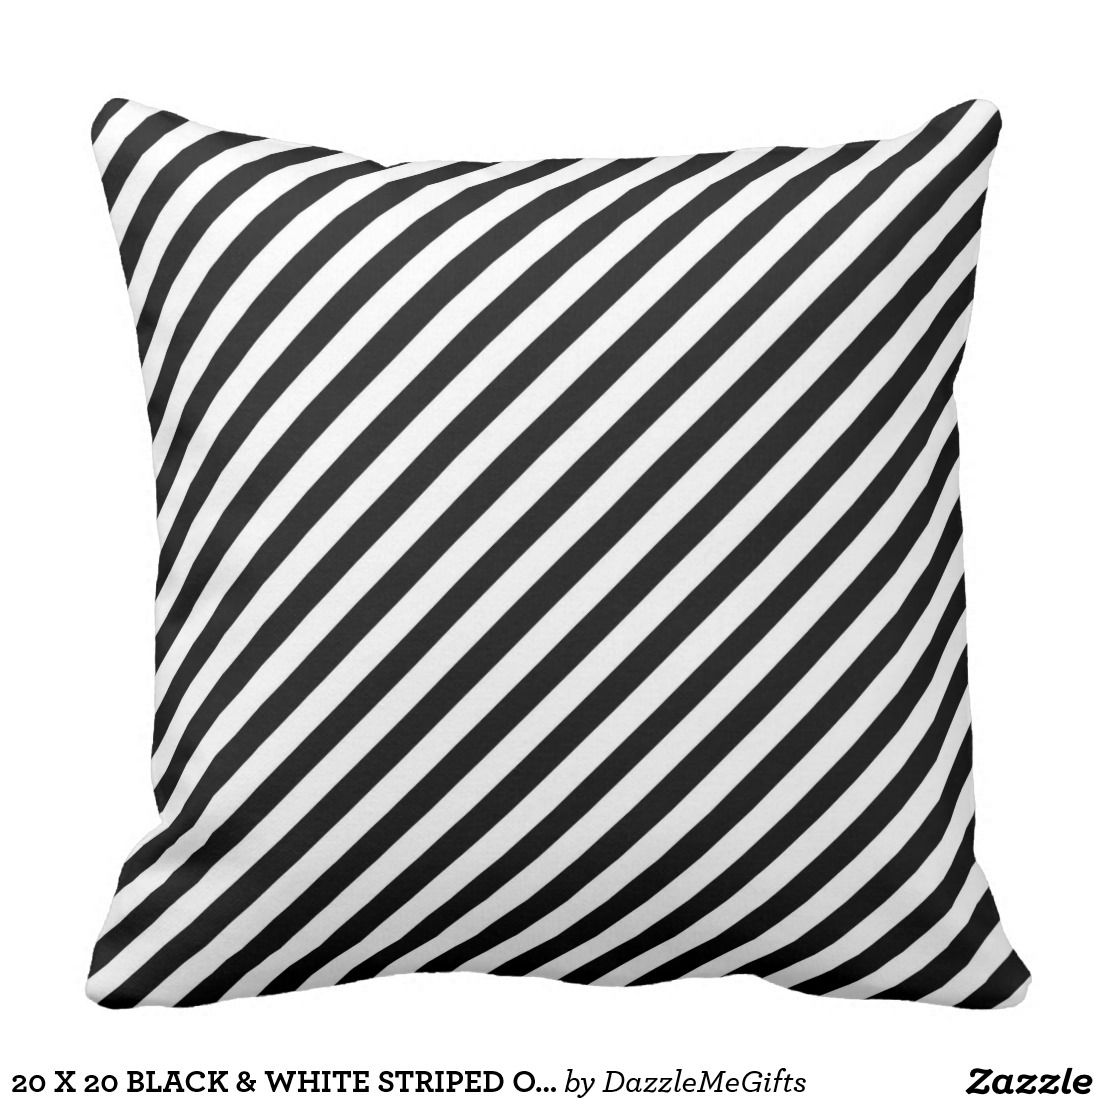 20 X 20 Black White Striped Outdoor Pillow Dazzlemegifts Zazzle